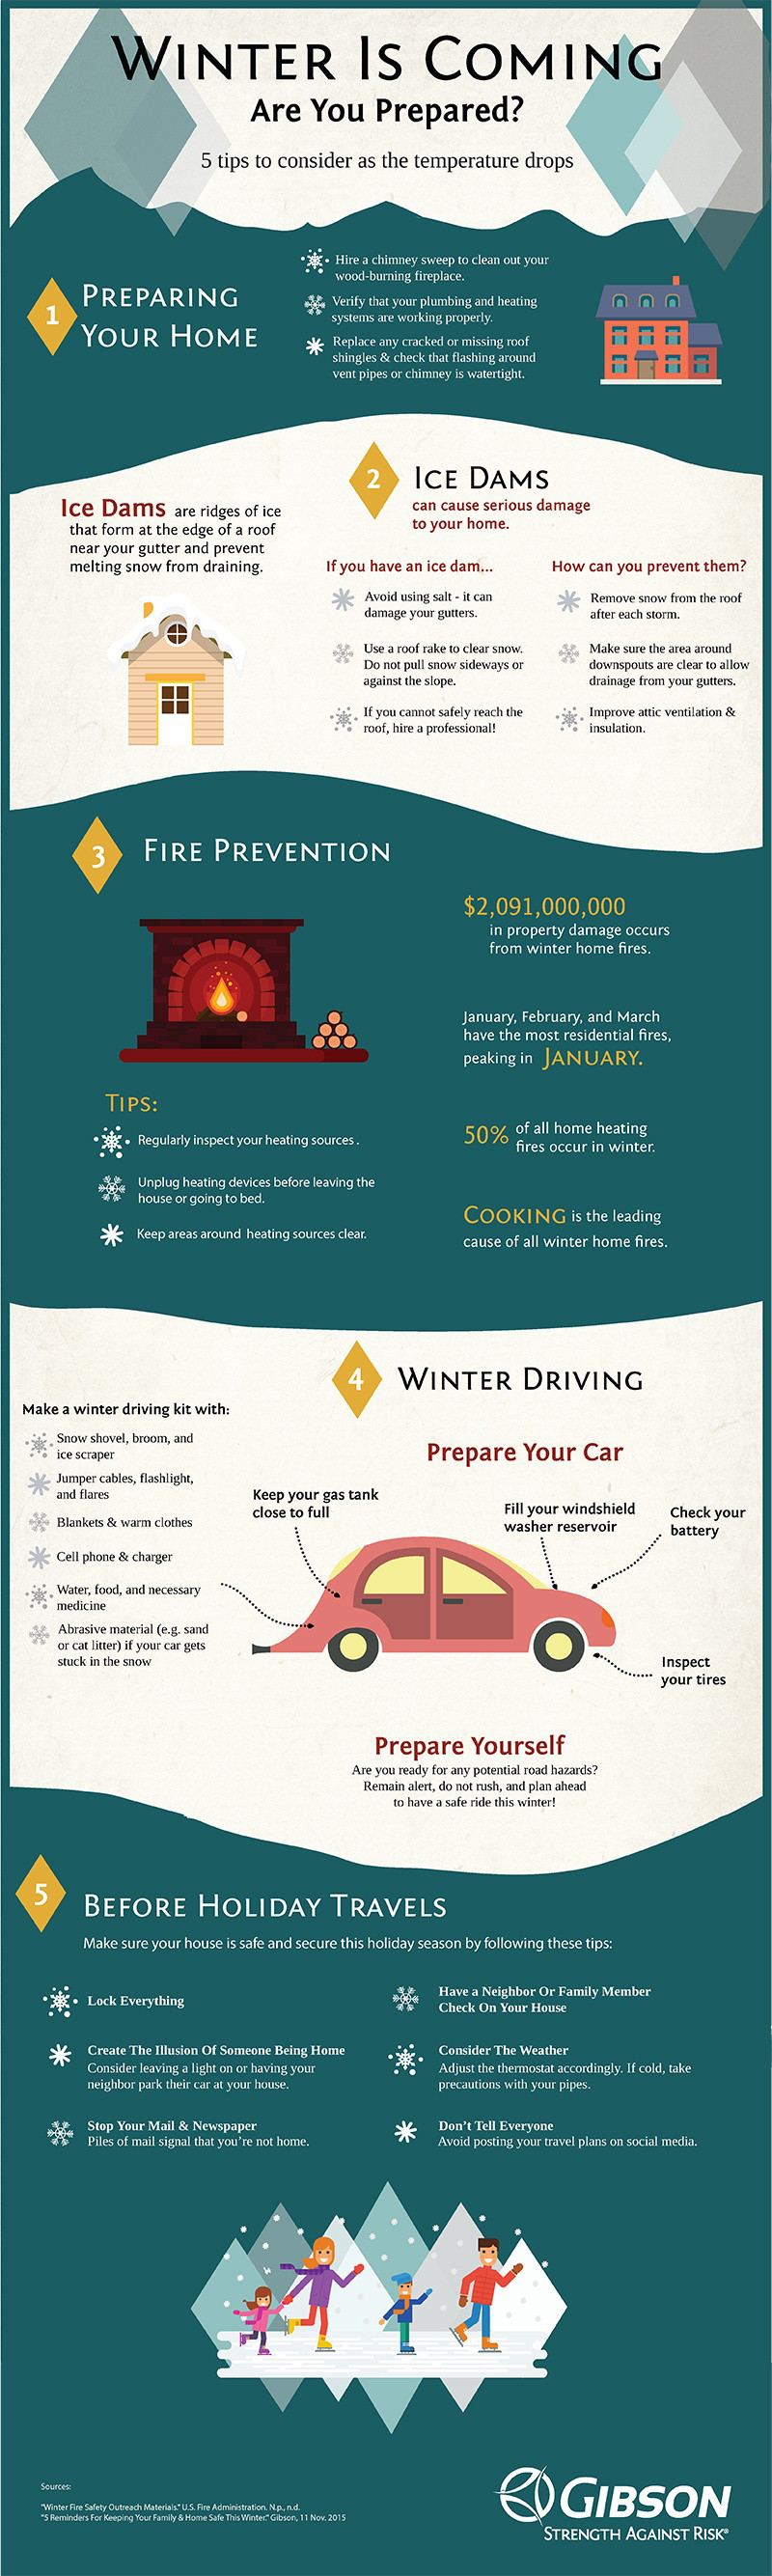 Winter Is Coming: Are You Prepared? #infographic #Personal Insurance #Winter #Winter Driving